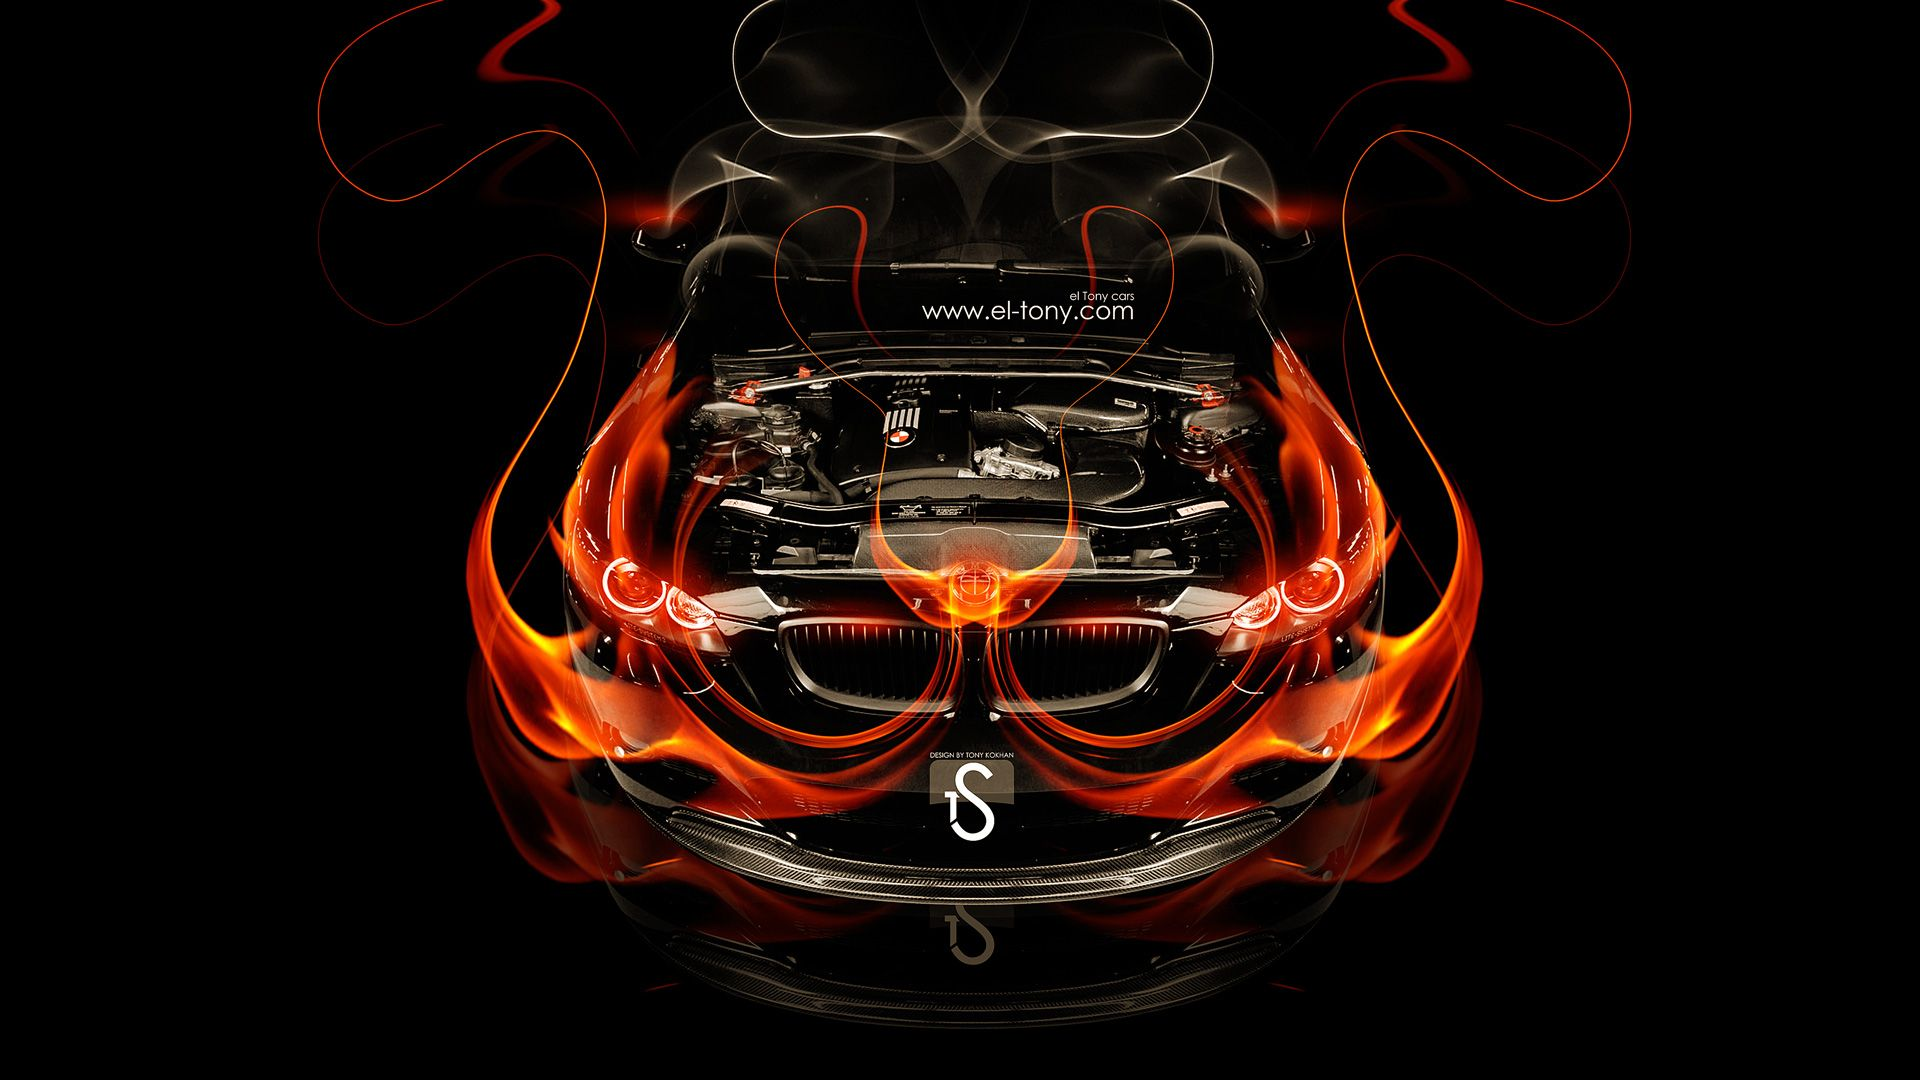 Car Engine Wallpapers - Top Free Car Engine Backgrounds ...